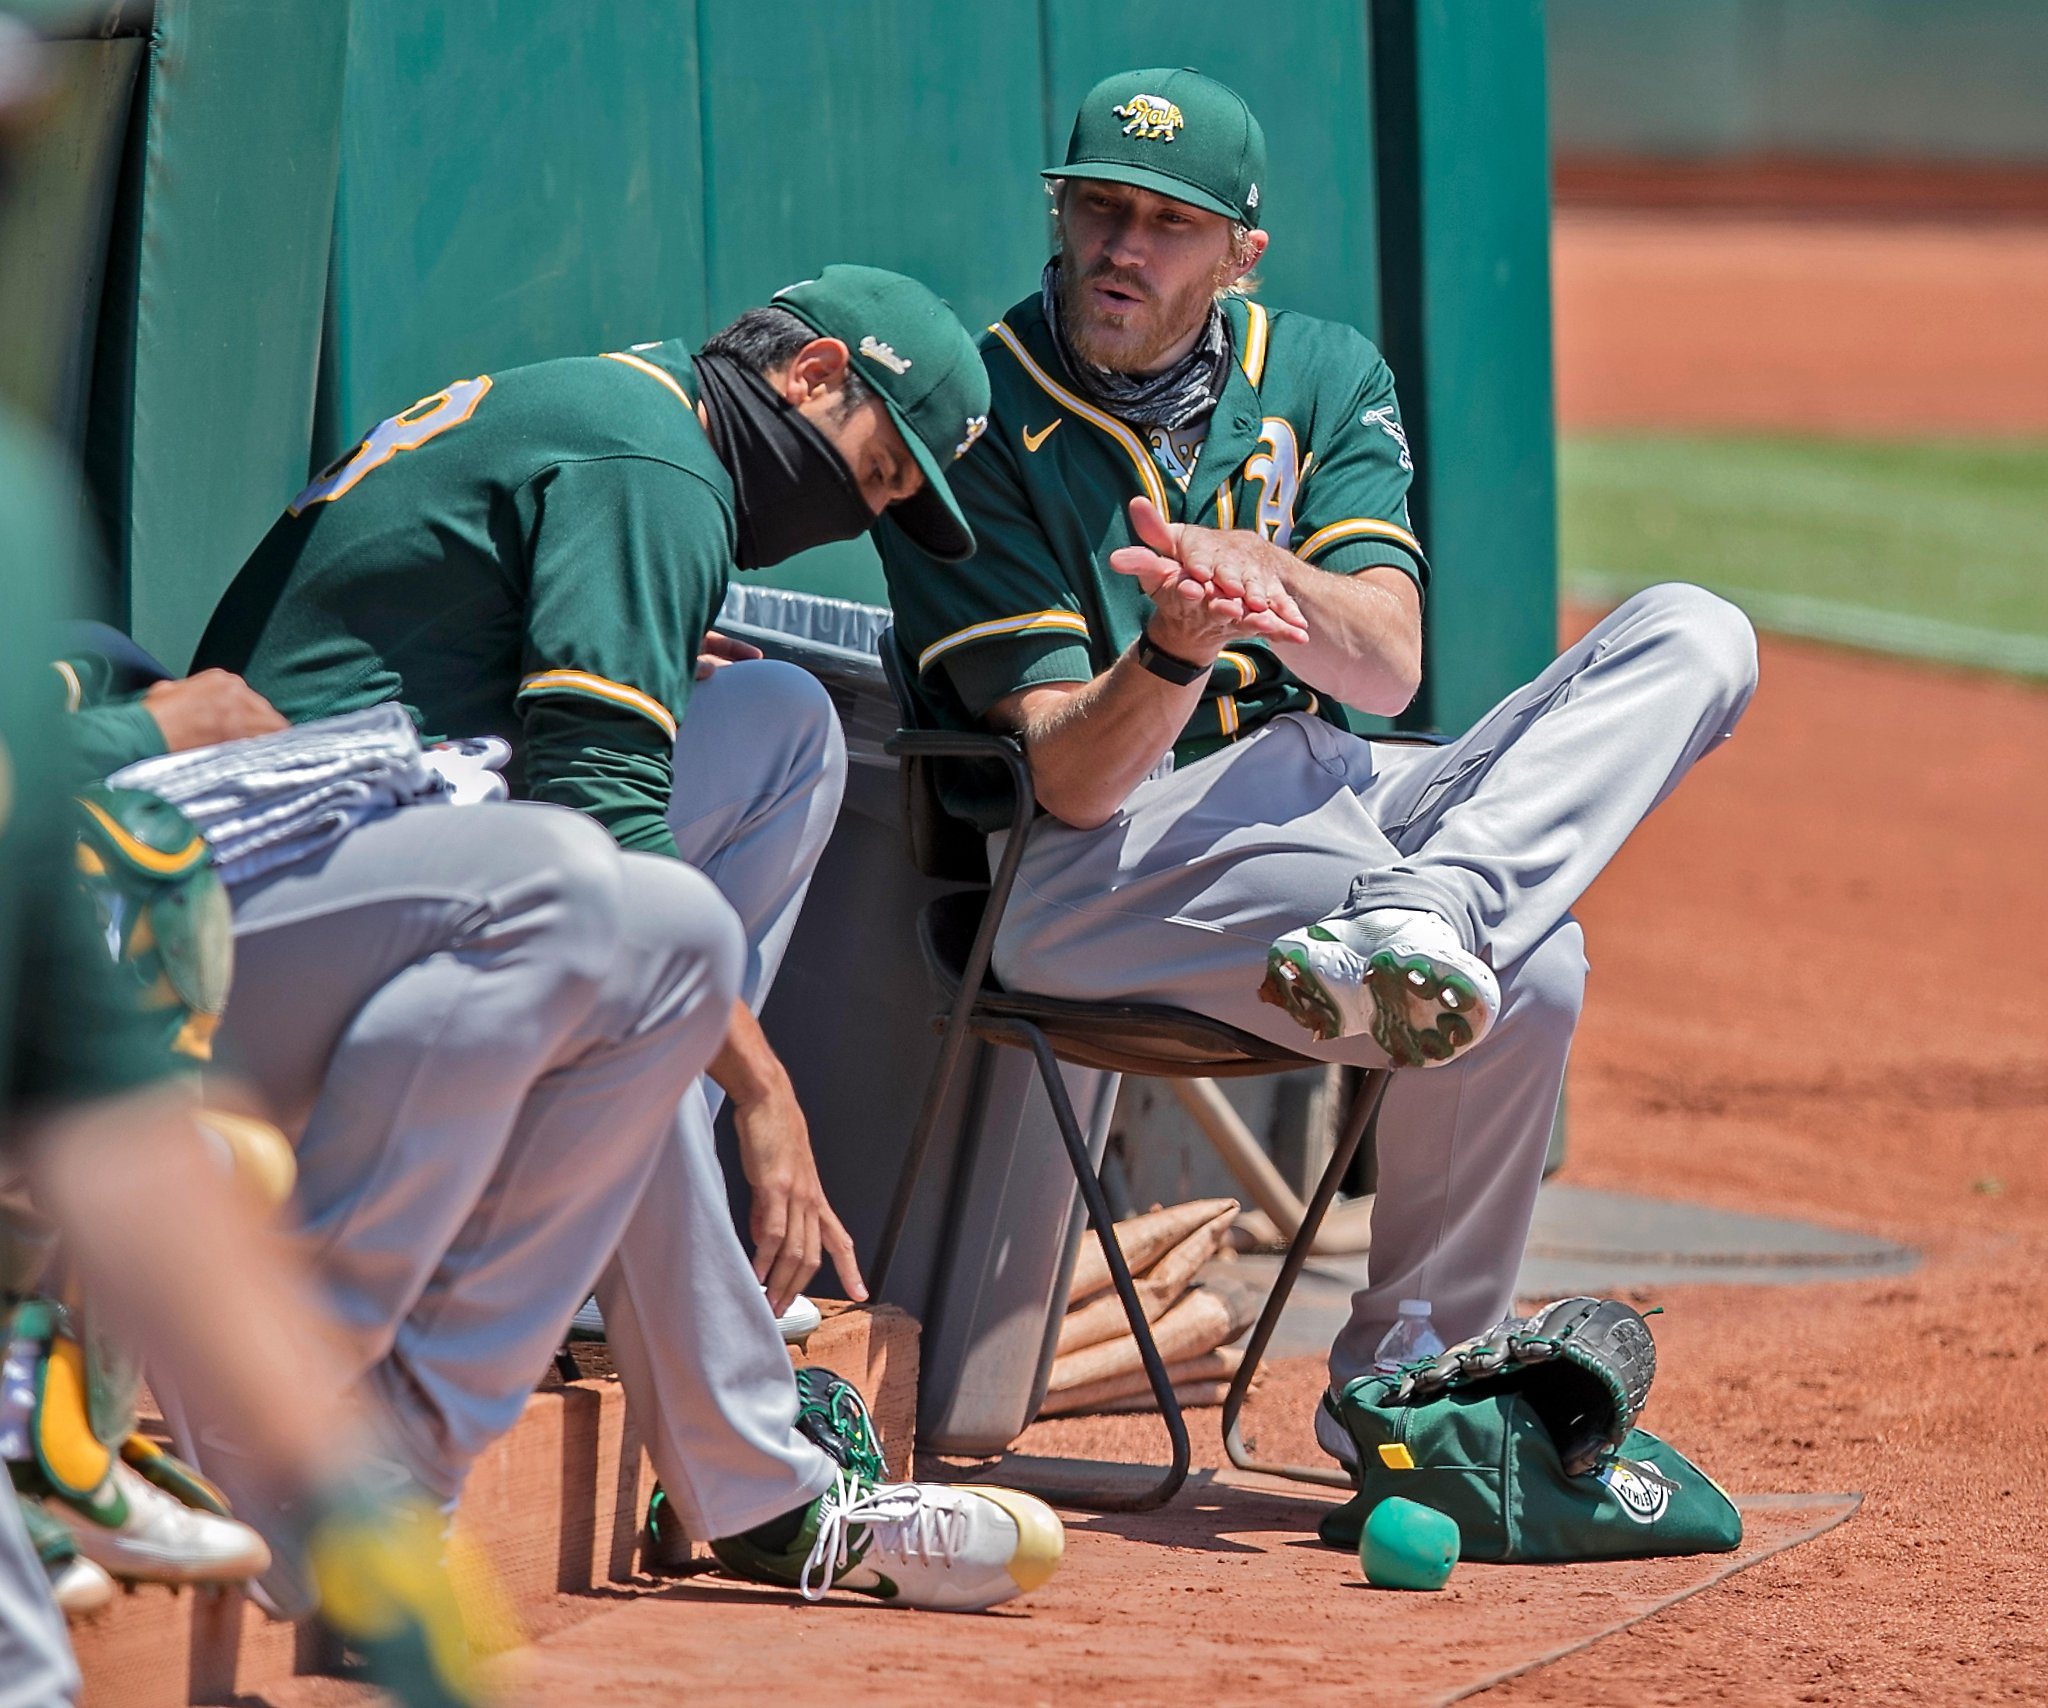 Forget a grip? A's pitchers say it happens more often than you'd think